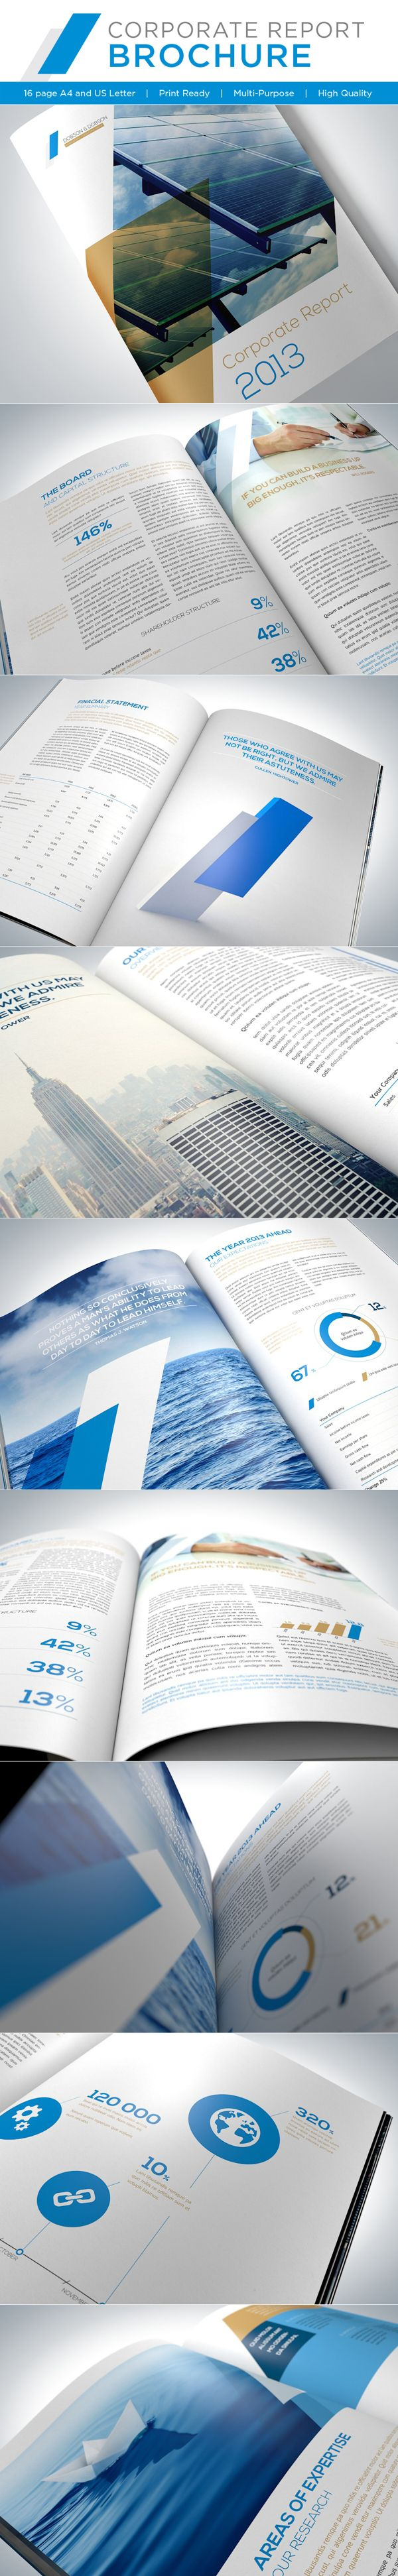 154 best images about amazing brochure designs on pinterest for Amazing brochure designs